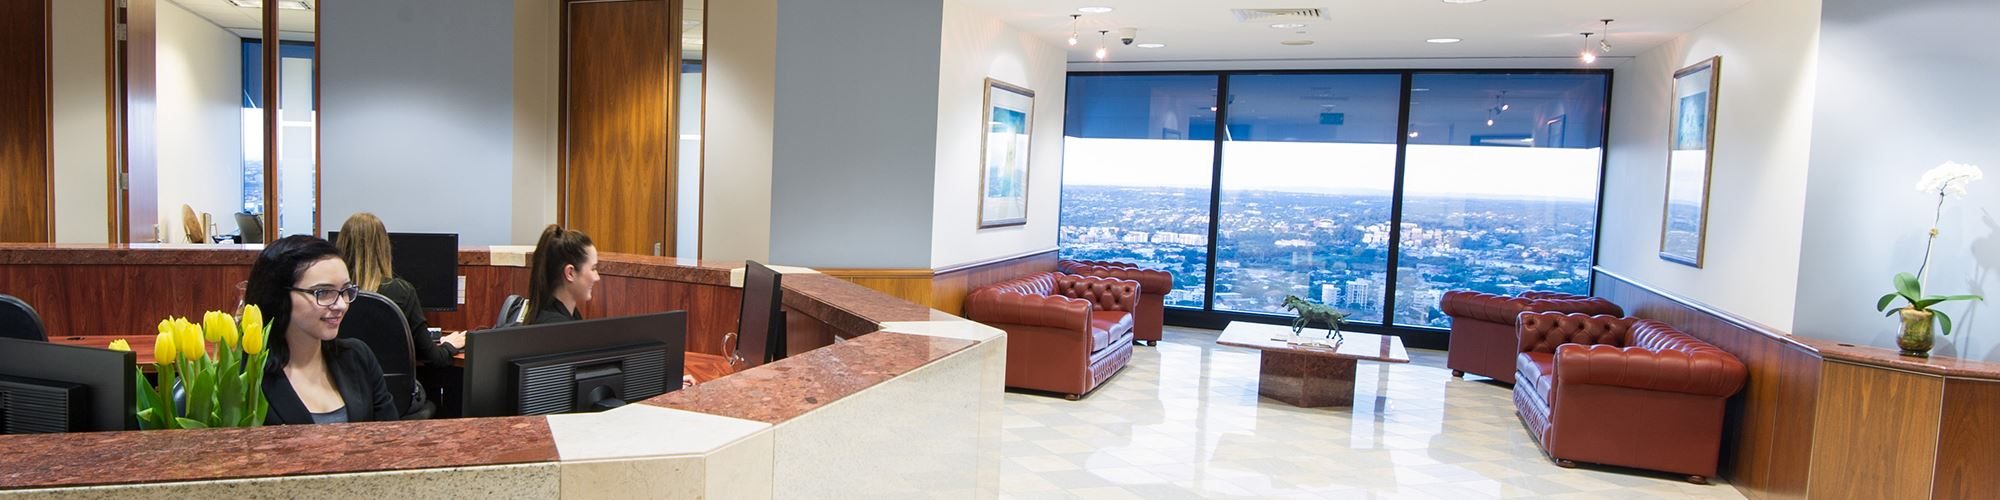 banner-riparian-plaza-brisbane-reception-1.jpg